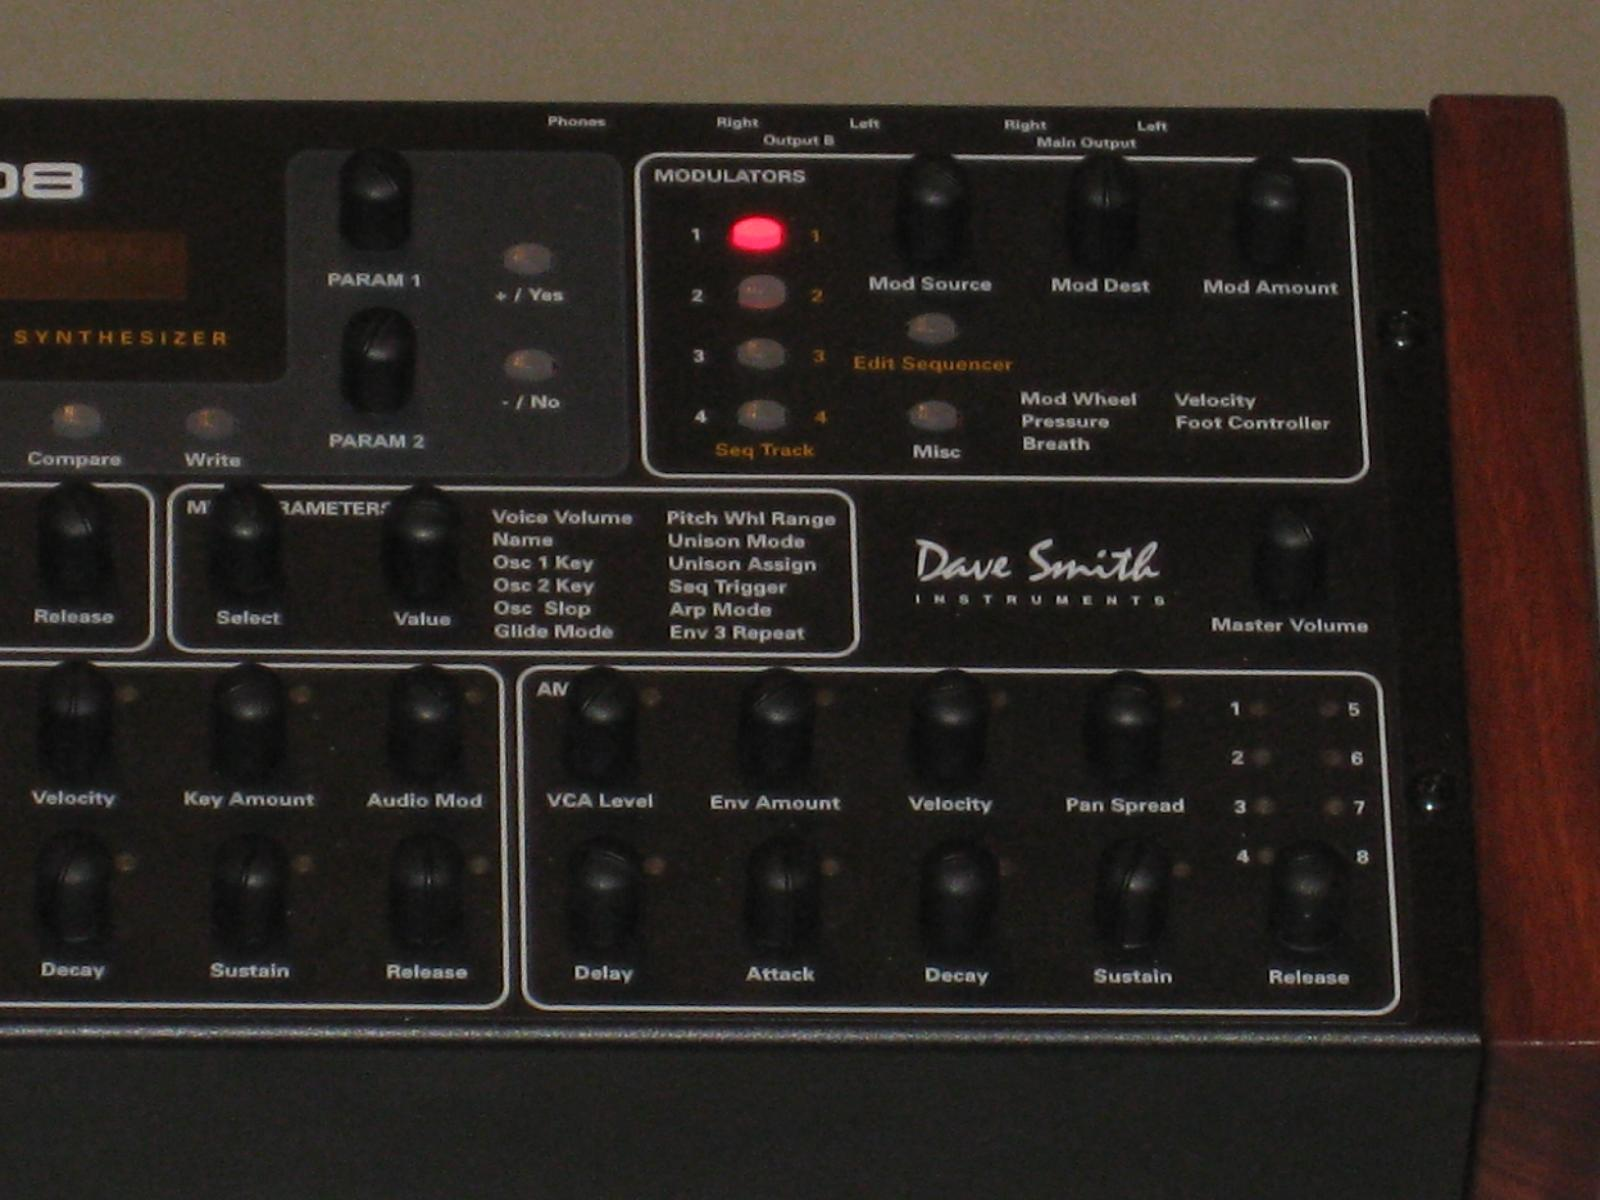 infrequent sound technology dave smith instruments prophet 39 08 synthesizer module. Black Bedroom Furniture Sets. Home Design Ideas